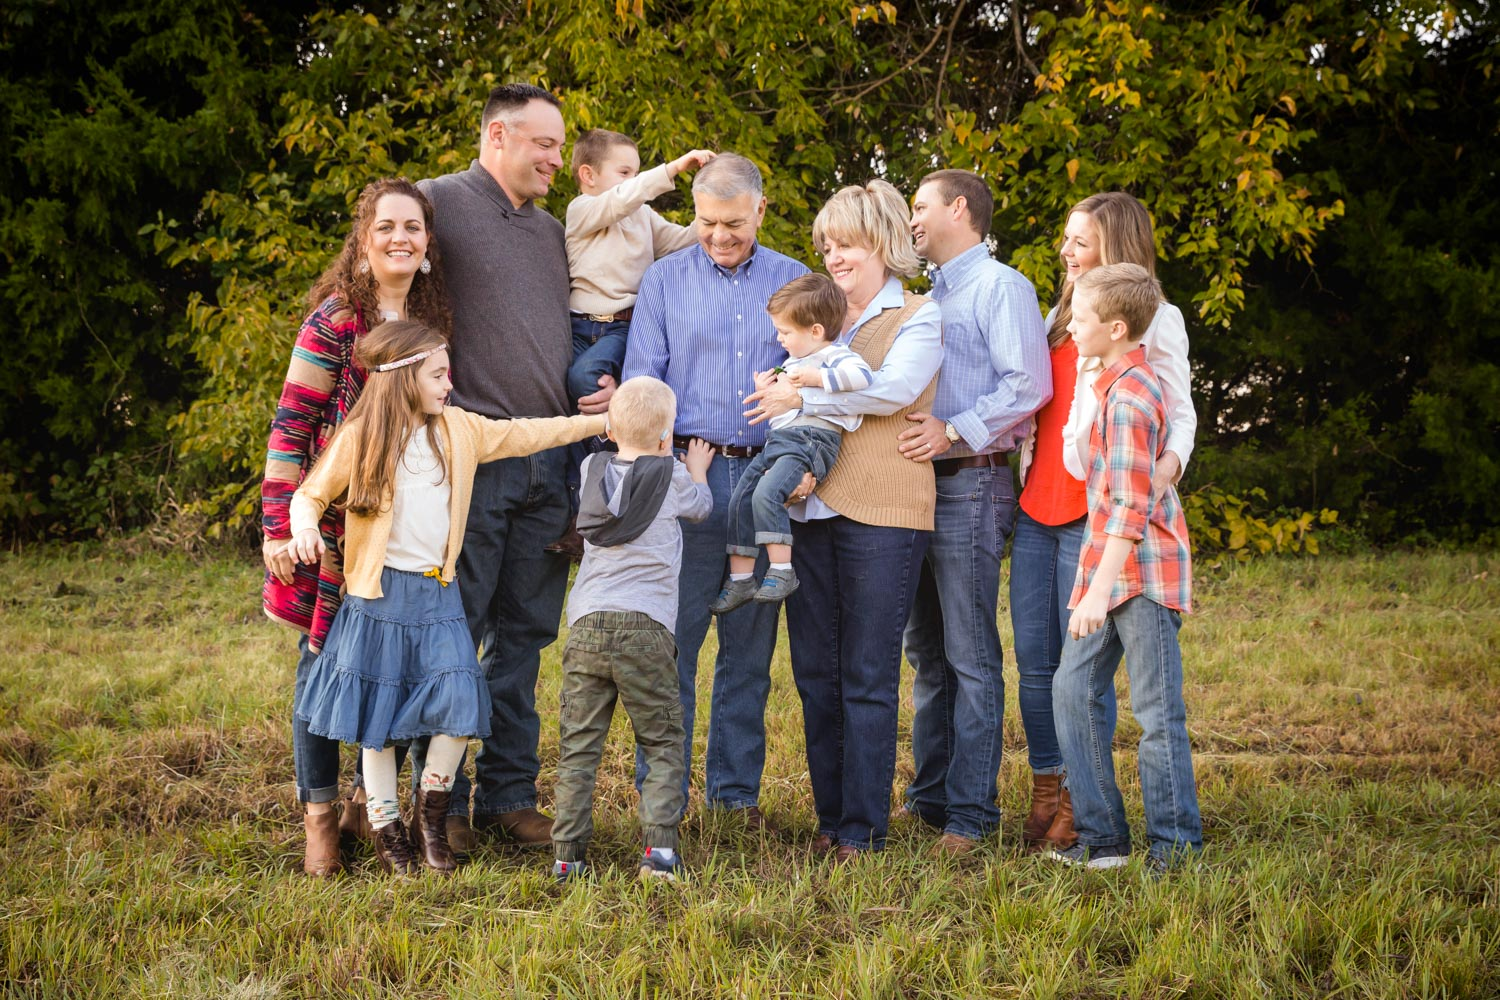 Large Group Photo Session family playing and laughing candid photo by Shelly Niehaus Photography Prosper, TX.-3